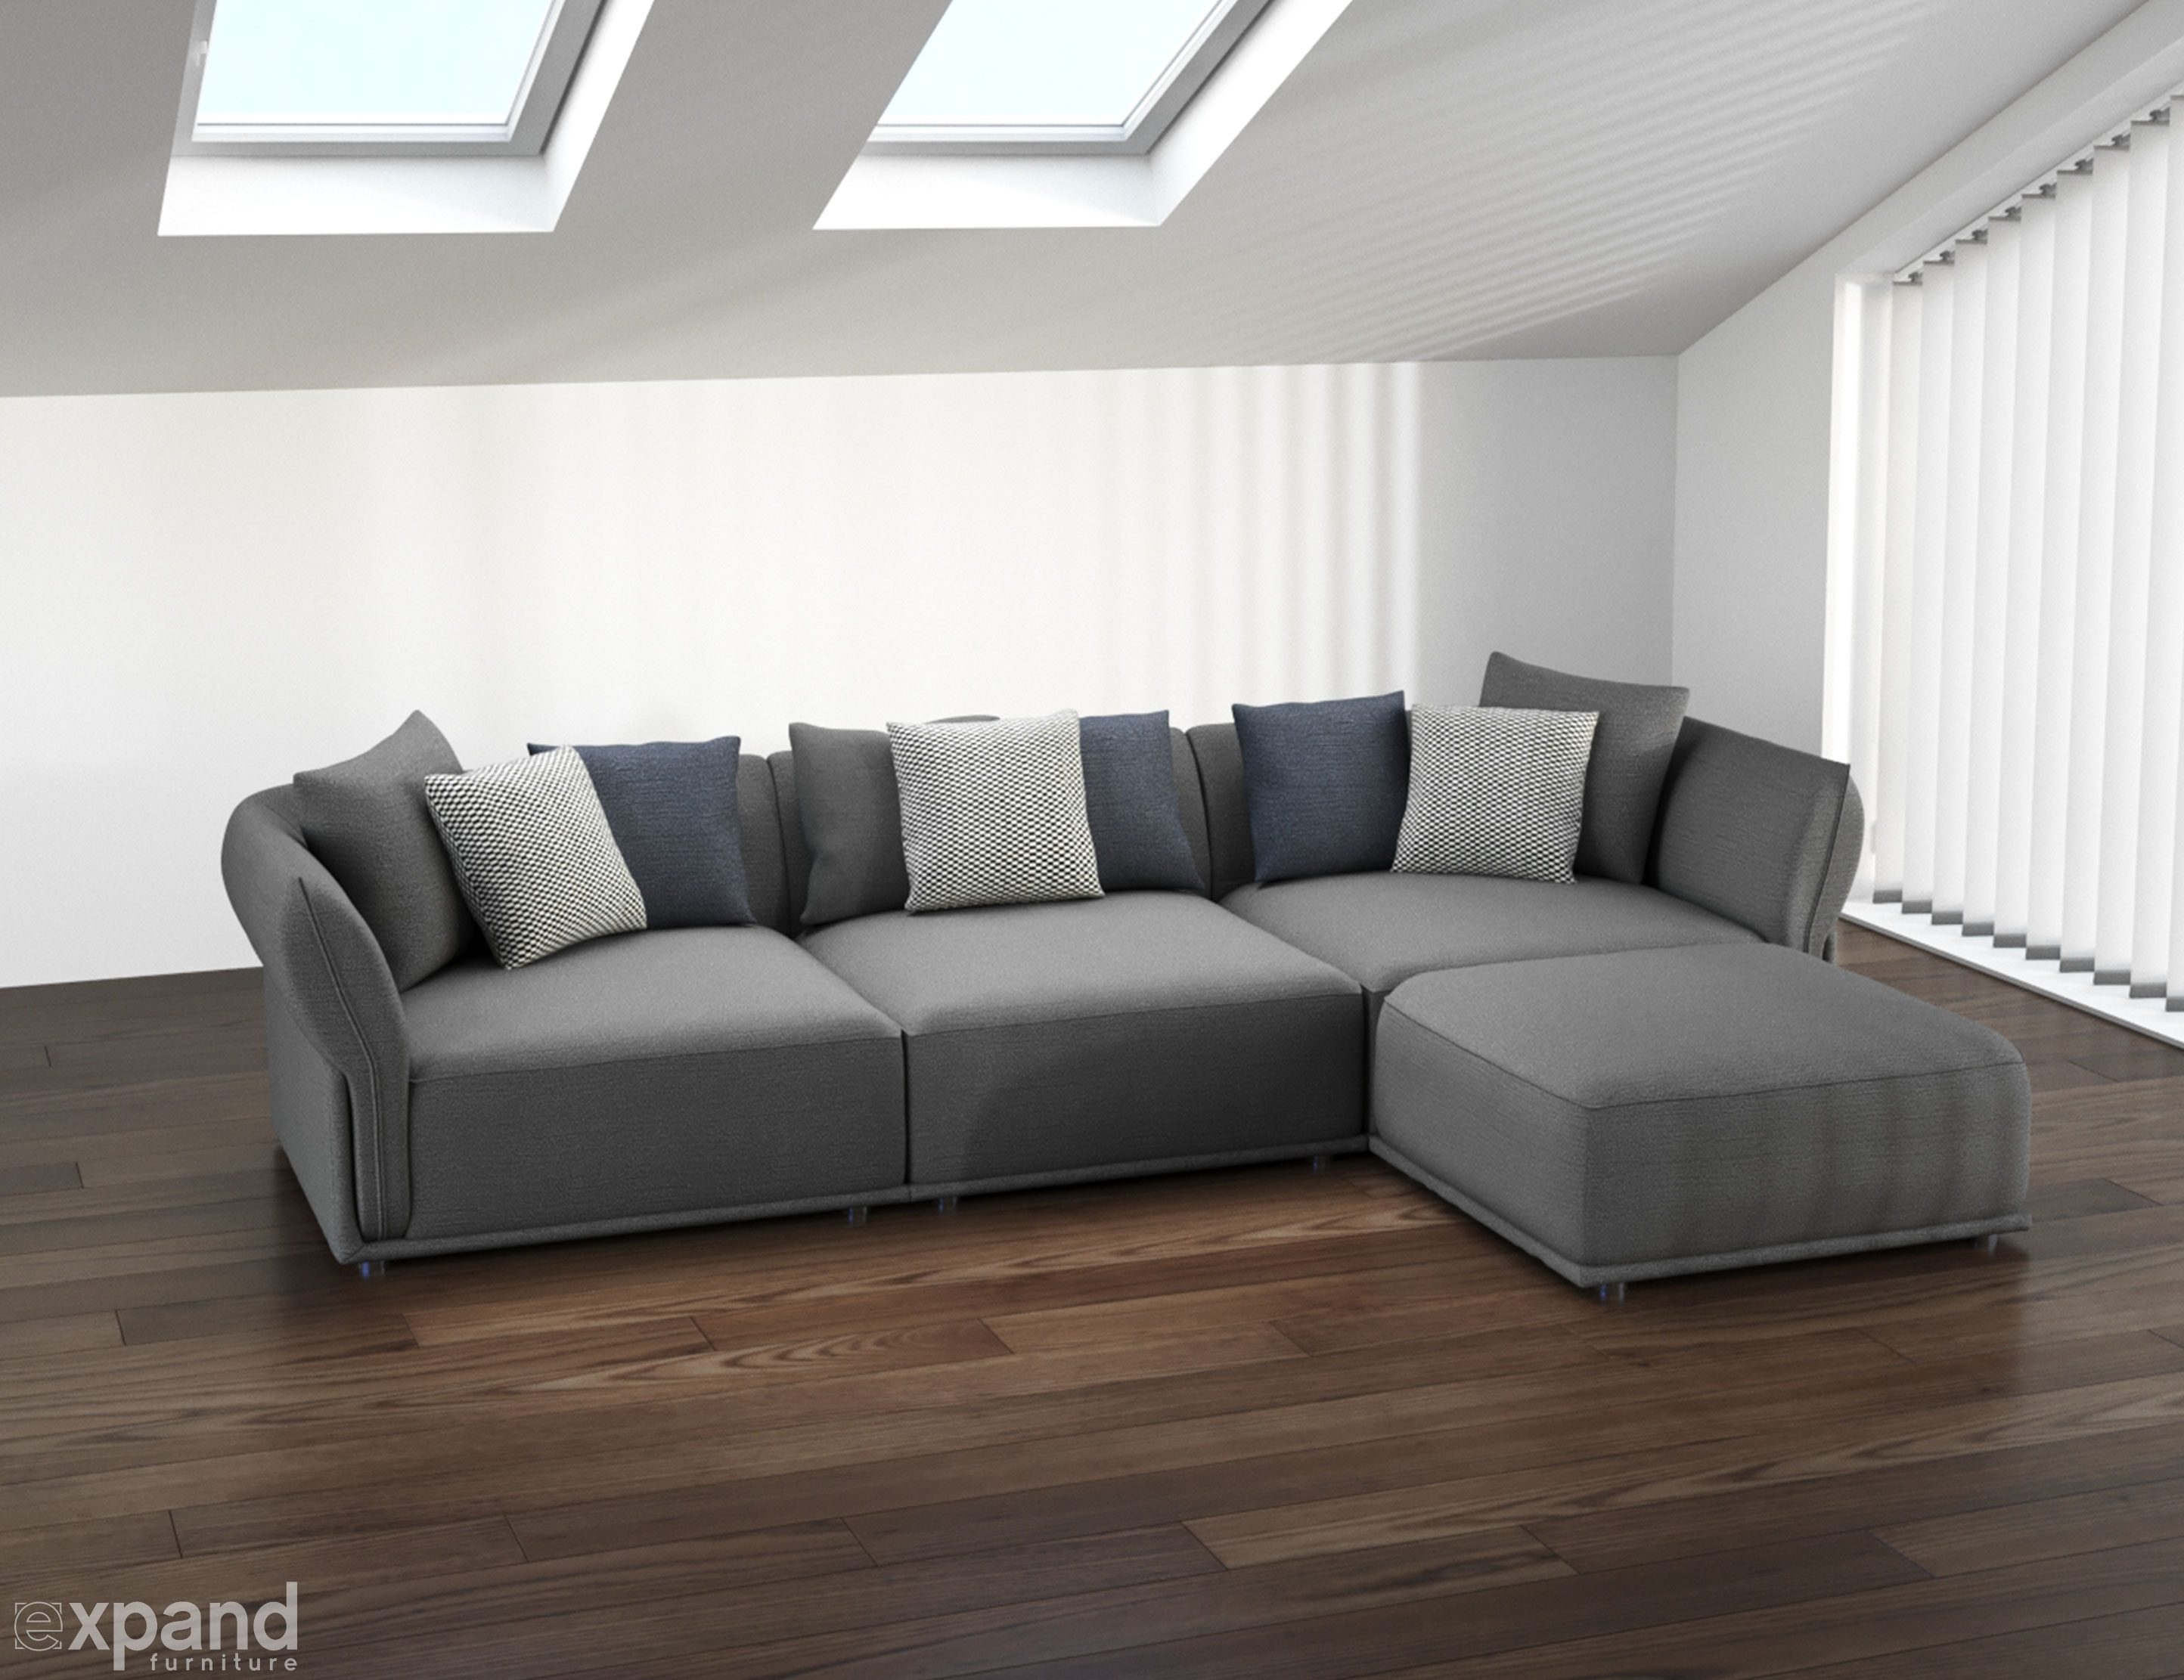 Furniture : 2 Up Modular Sofa Modular Sofa Plans Sofa Set Hyderabad for Sectional Sofas in Hyderabad (Image 4 of 10)